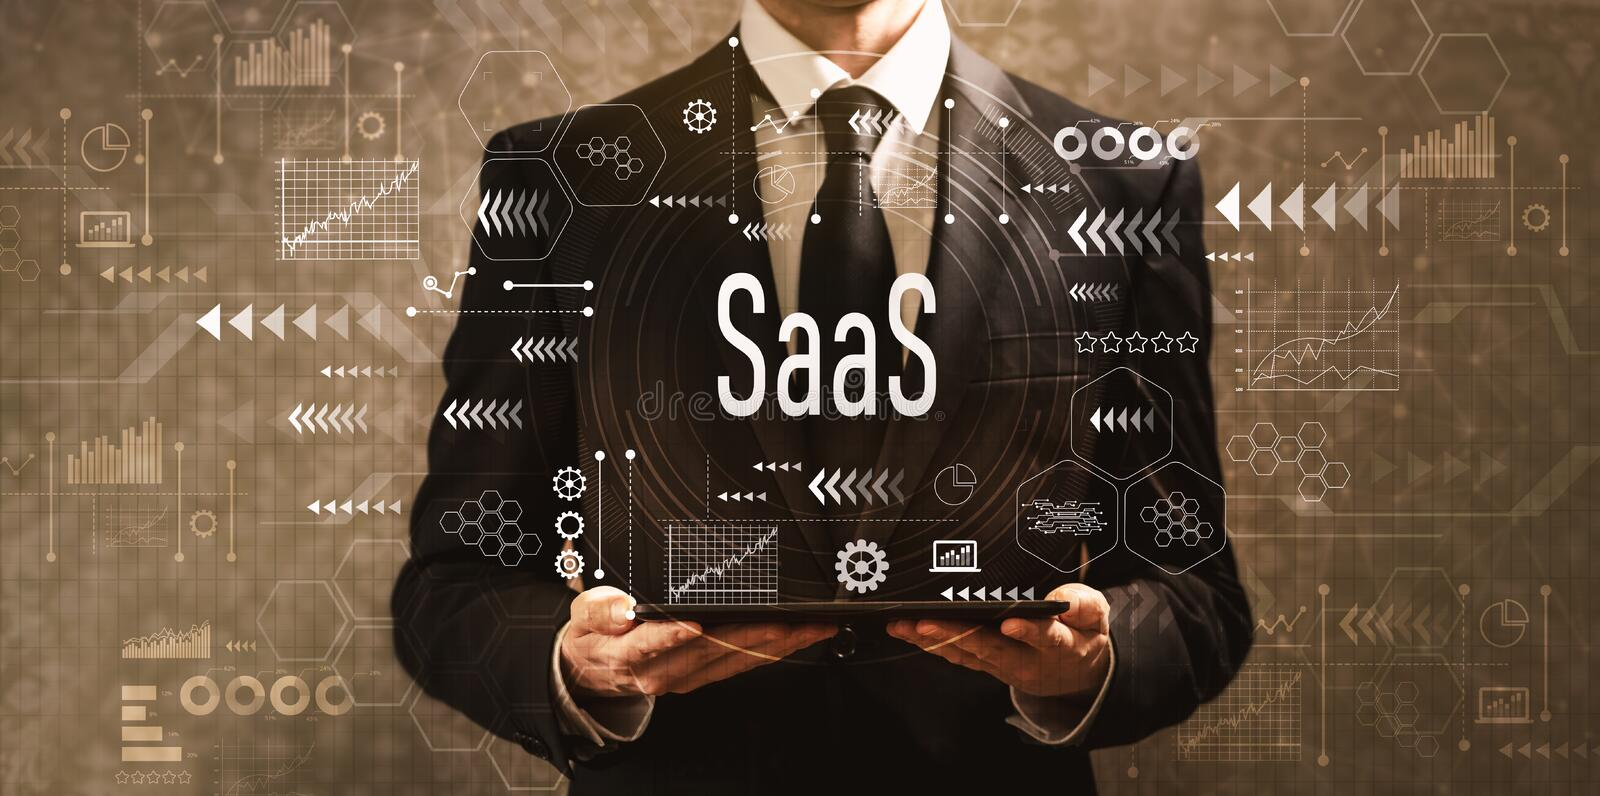 SaaS with businessman holding a tablet computer stock photography